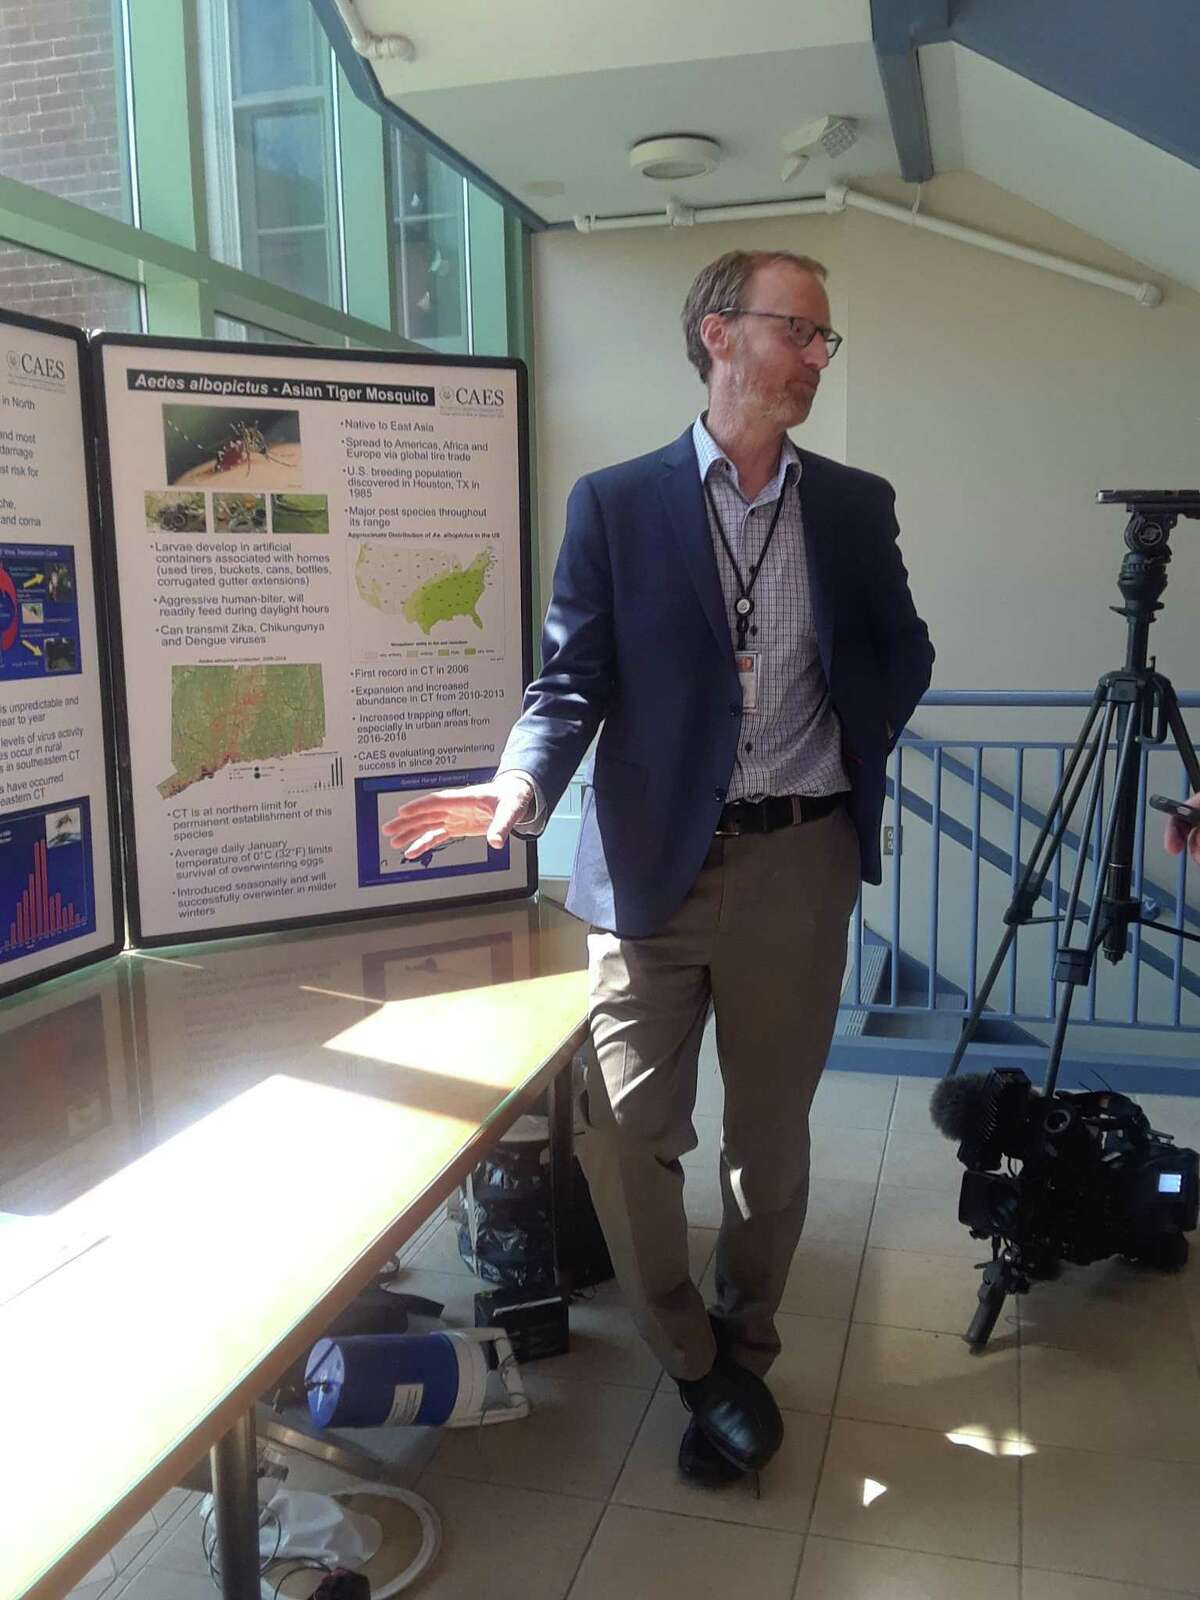 Philip Armstrong, research scientist and director of the mosquito surveillance program at the Connecticut Agricultural Experiment Station, speaks at the station in New Haven on June 3, 2019.